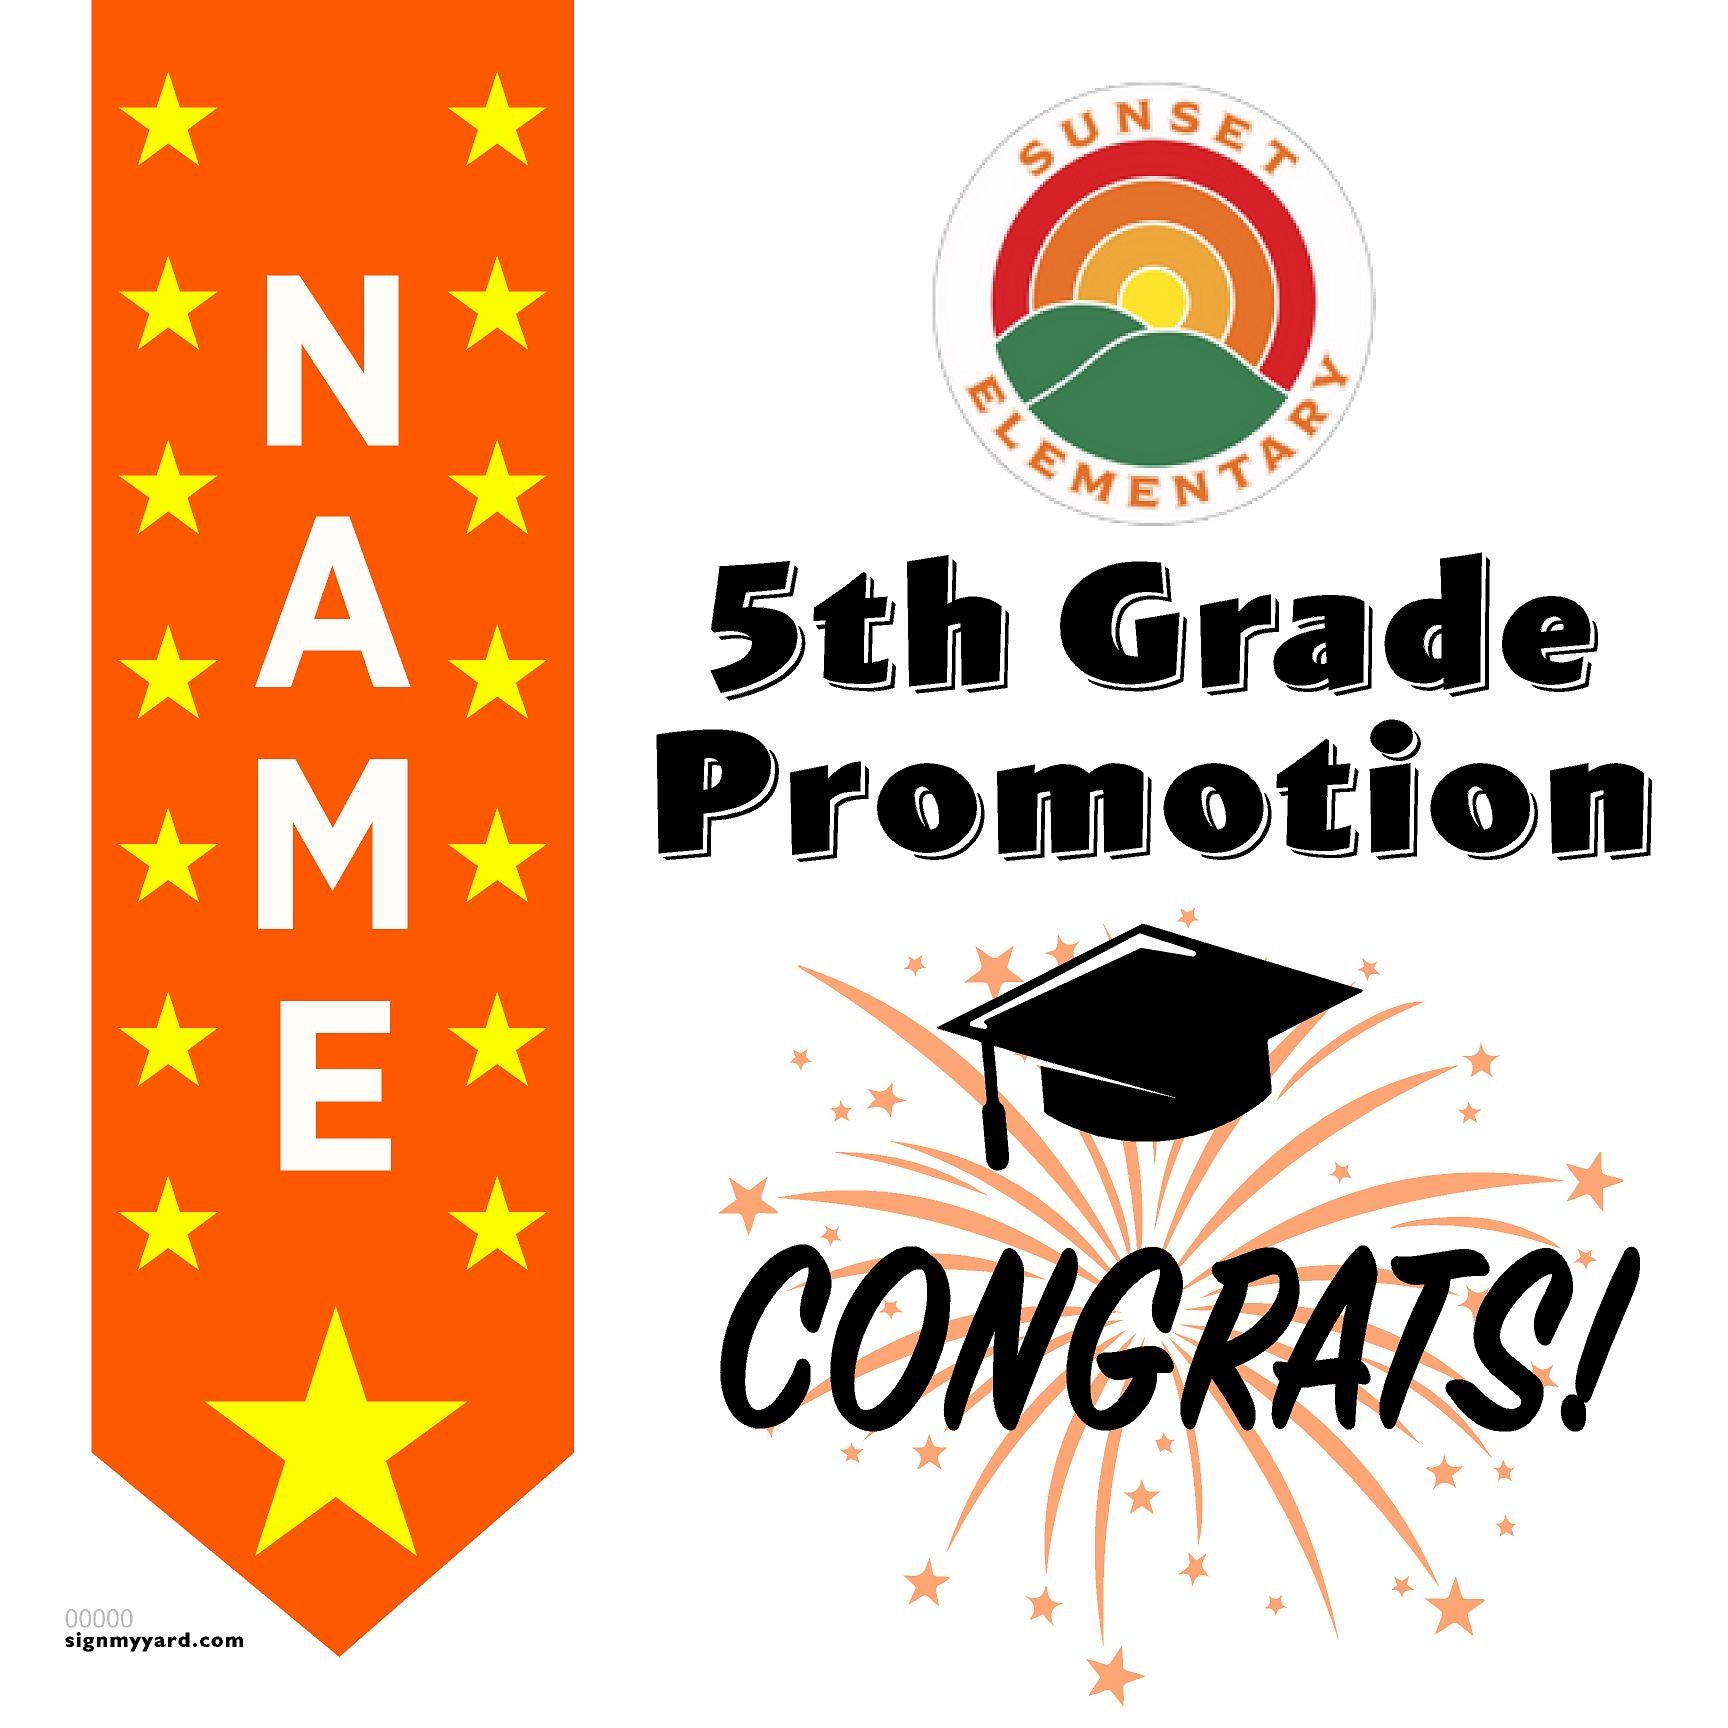 Sunset Elementary School 5th Grade Promotion 24x24 #shineon2027 Yard Sign (Option B)